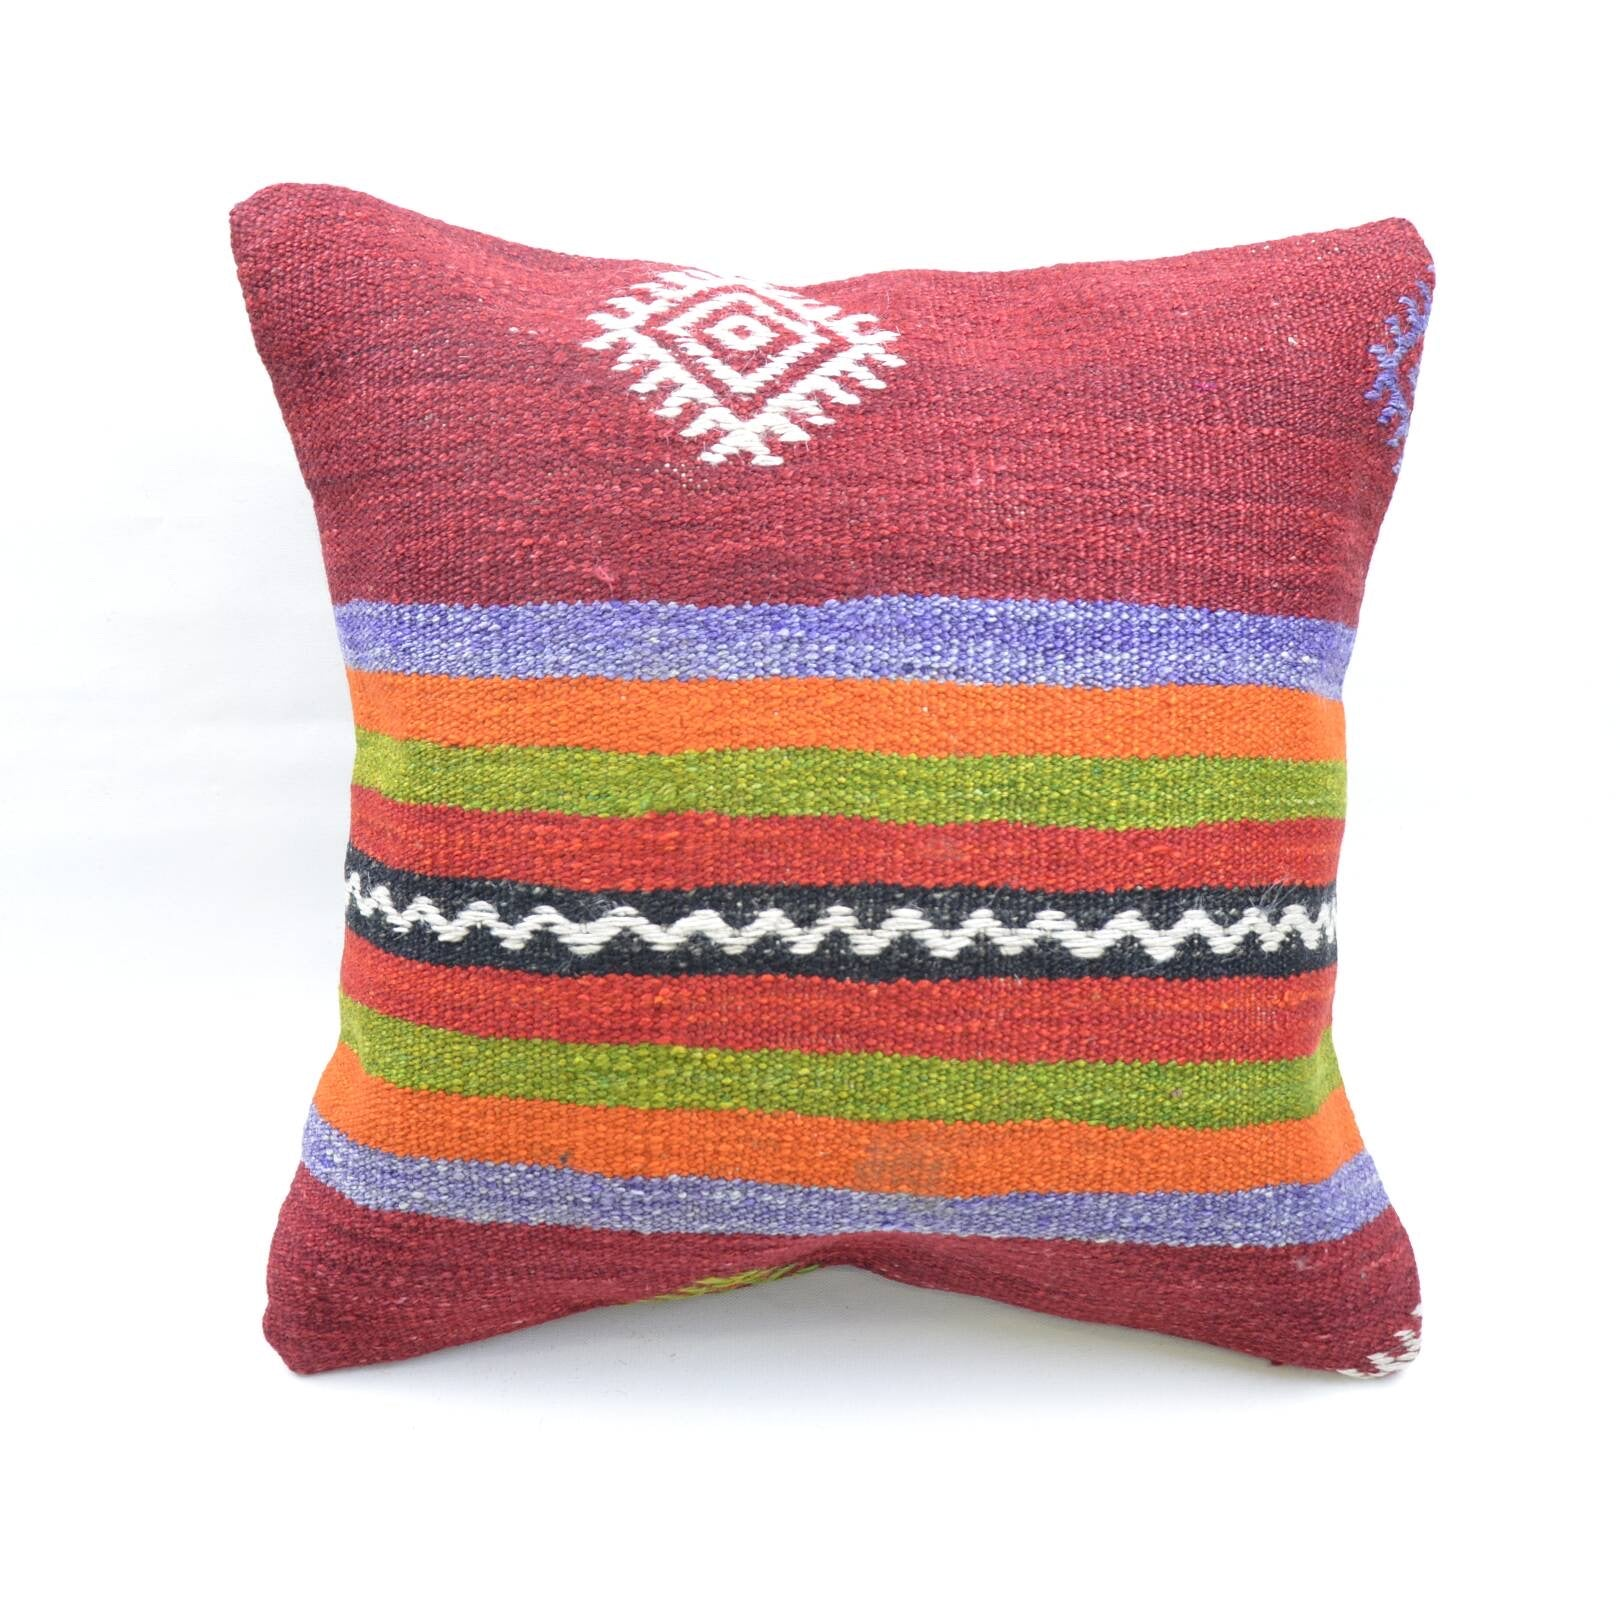 Kilim Pillow Cover 18